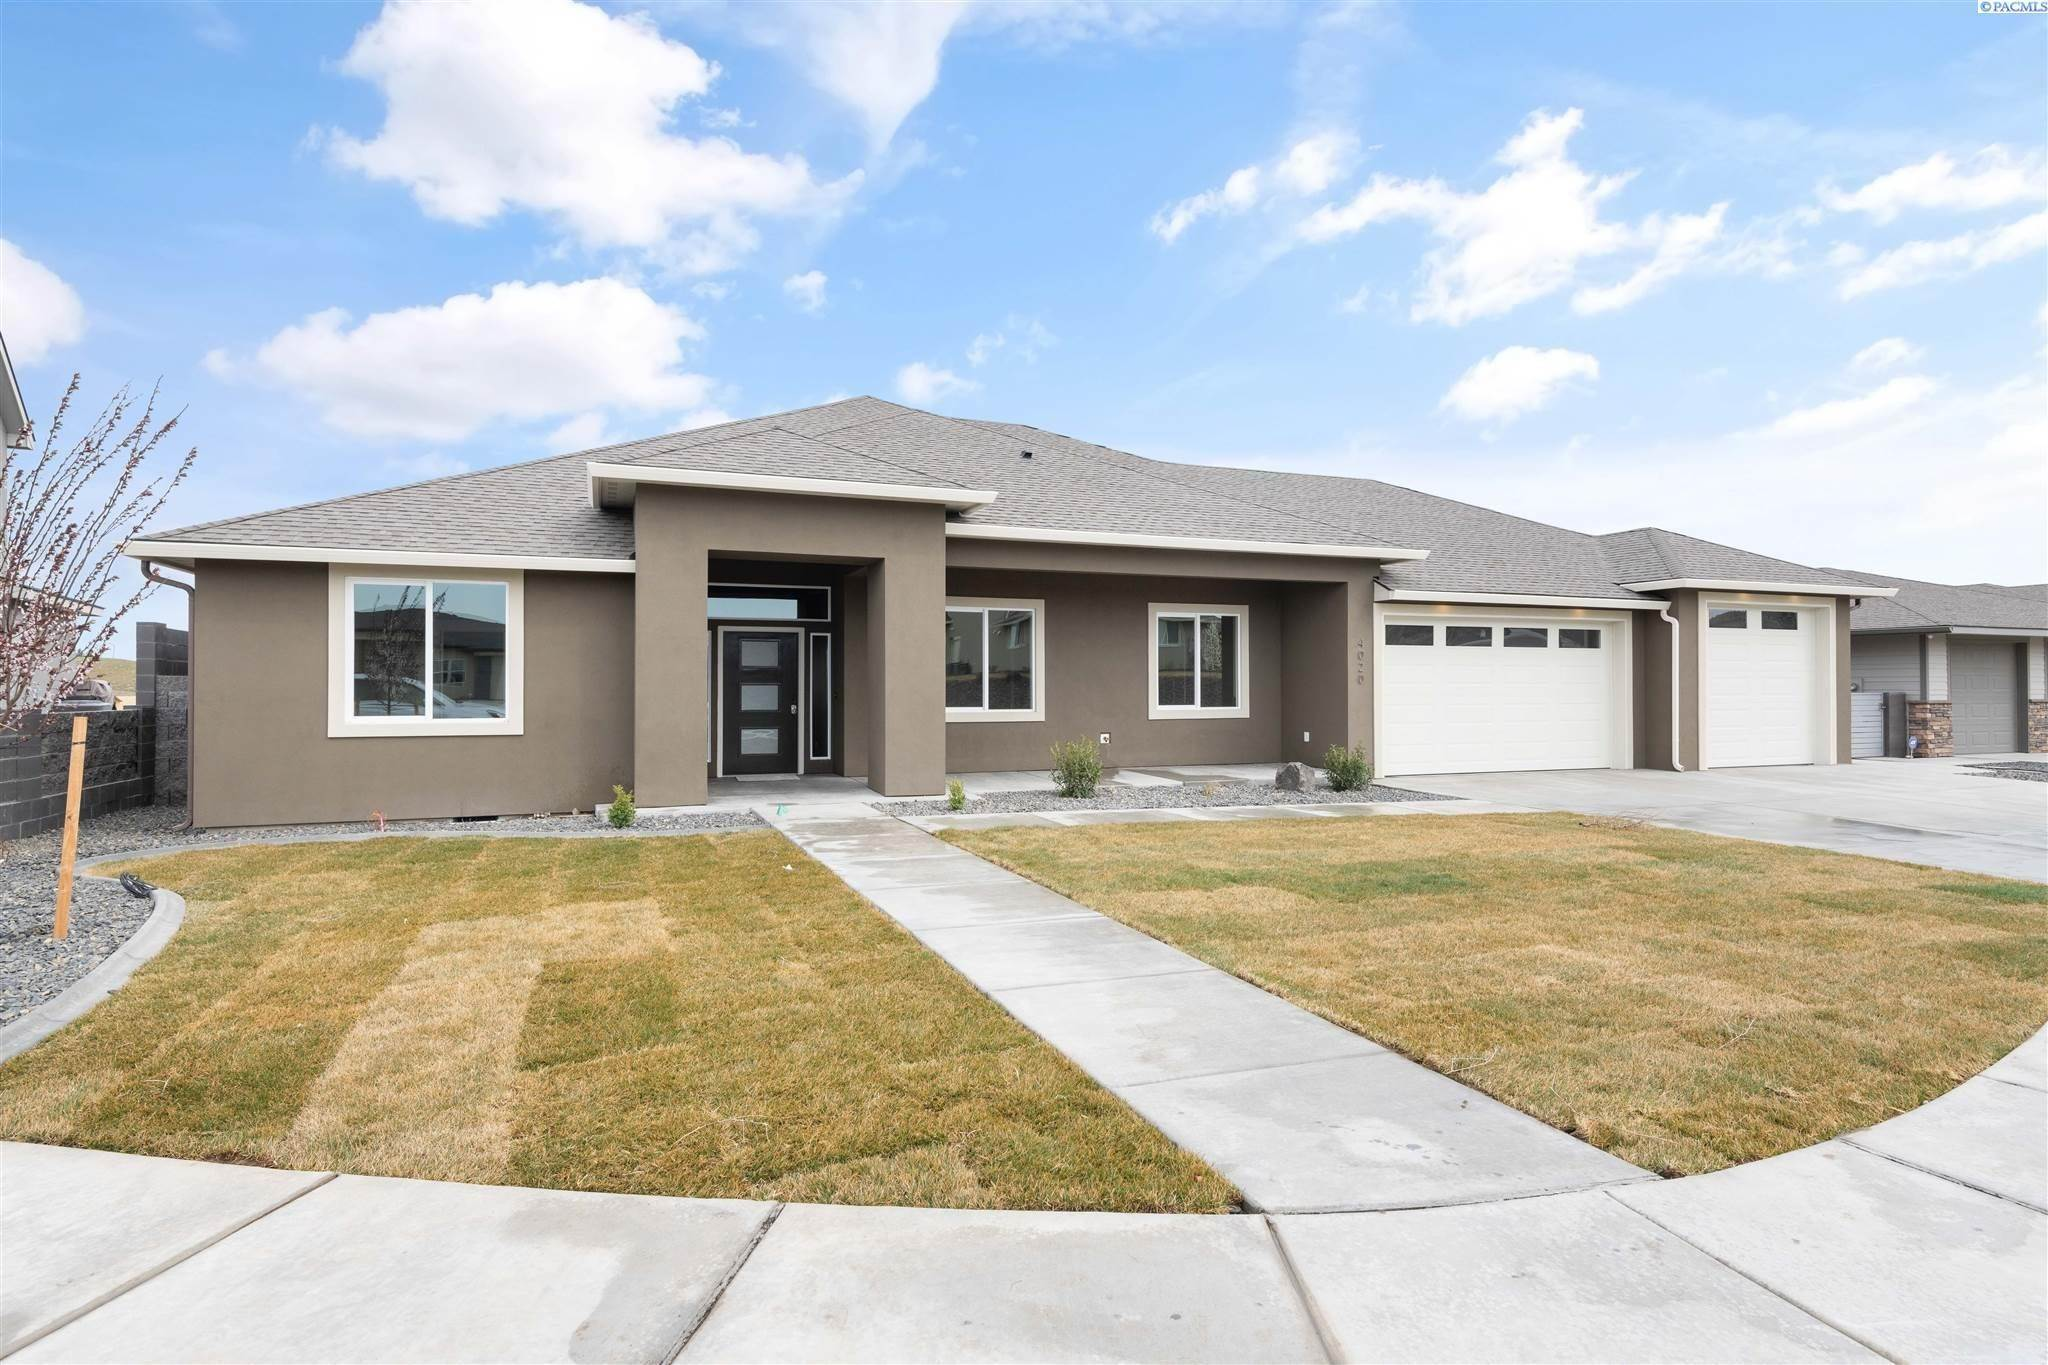 Single Family Homes for Sale at 4020 W 47th Court Kennewick, Washington 99337 United States